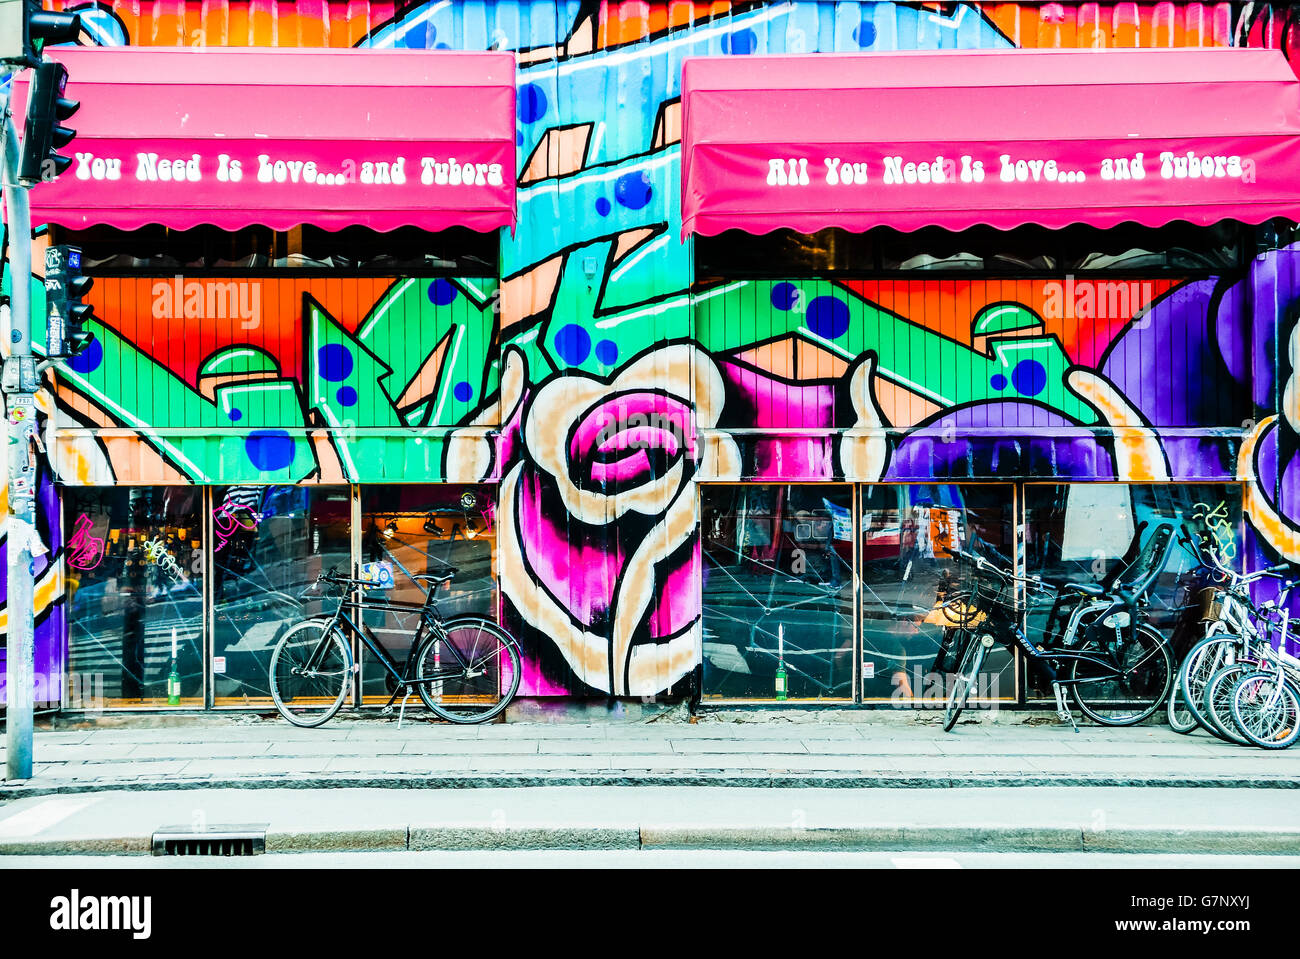 Graffiti and bicycles outside a bar in Copenhagen, Denmark with the motto 'All you need is love... and Tuborg'. - Stock Image